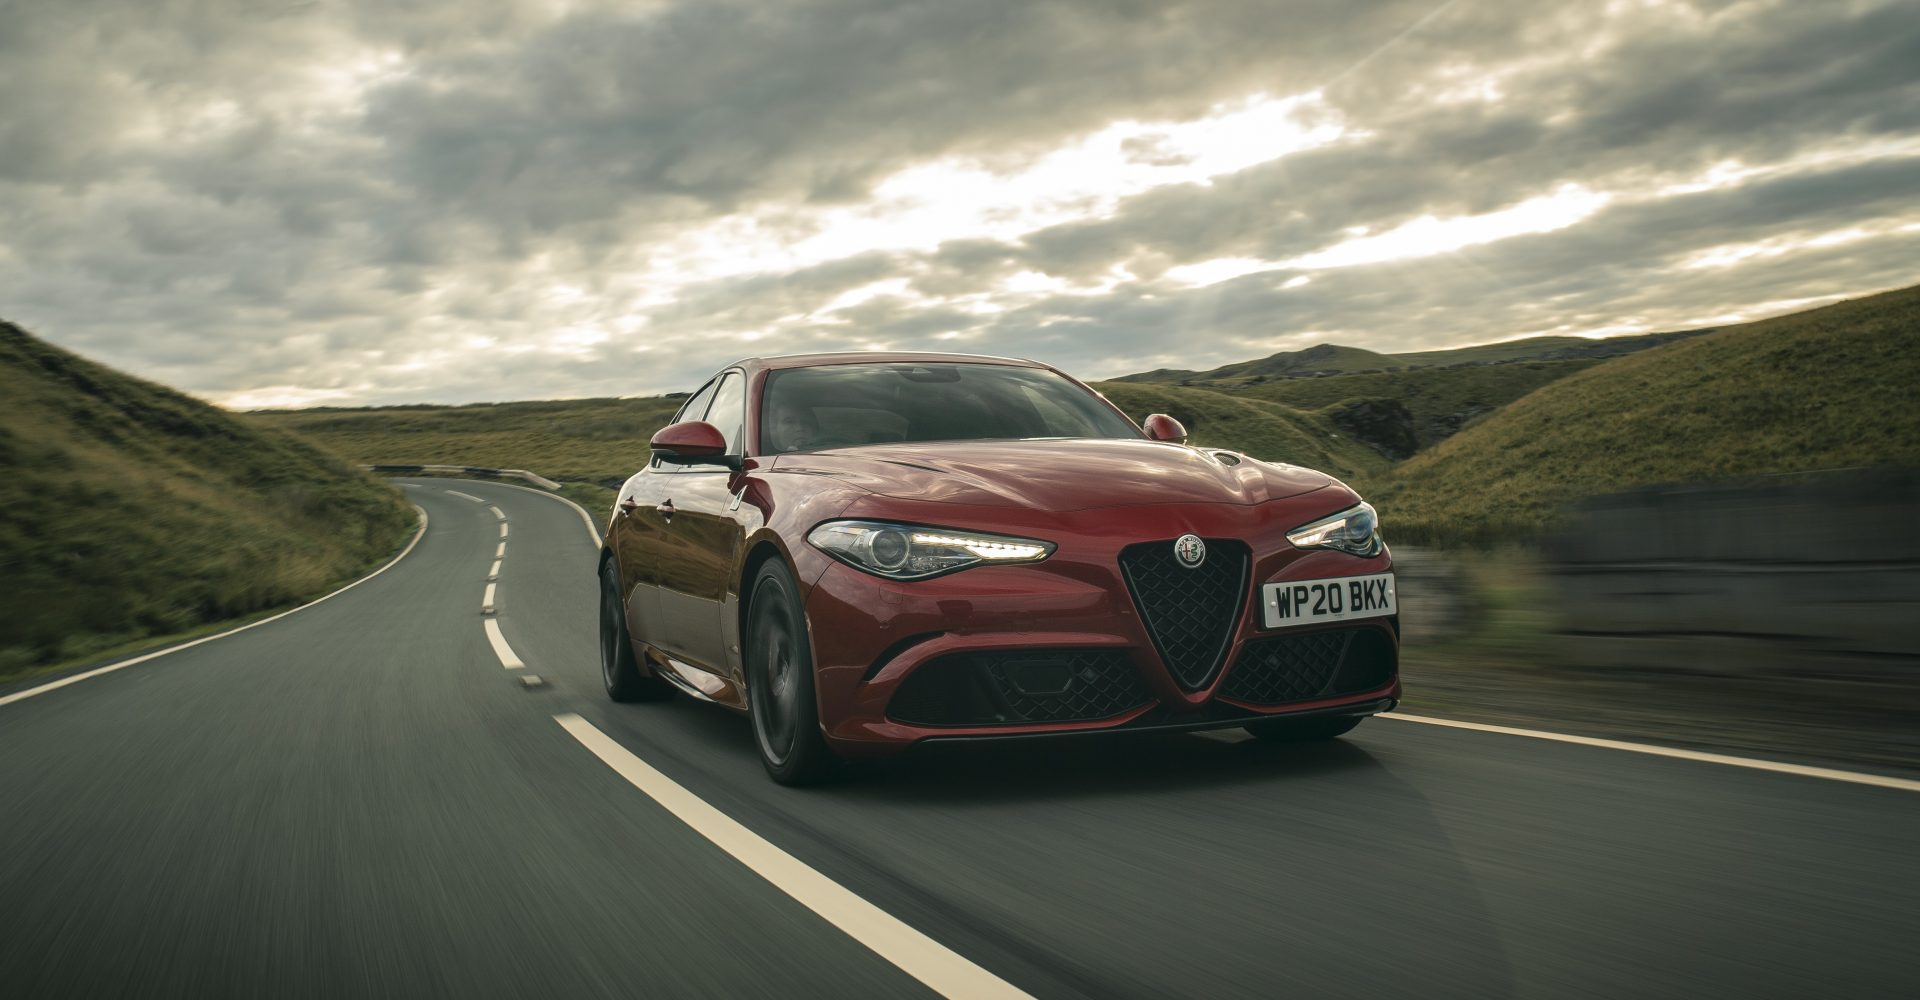 First Drive: Updates to the Alfa Romeo Giulia Quadrifoglio help refine the experience